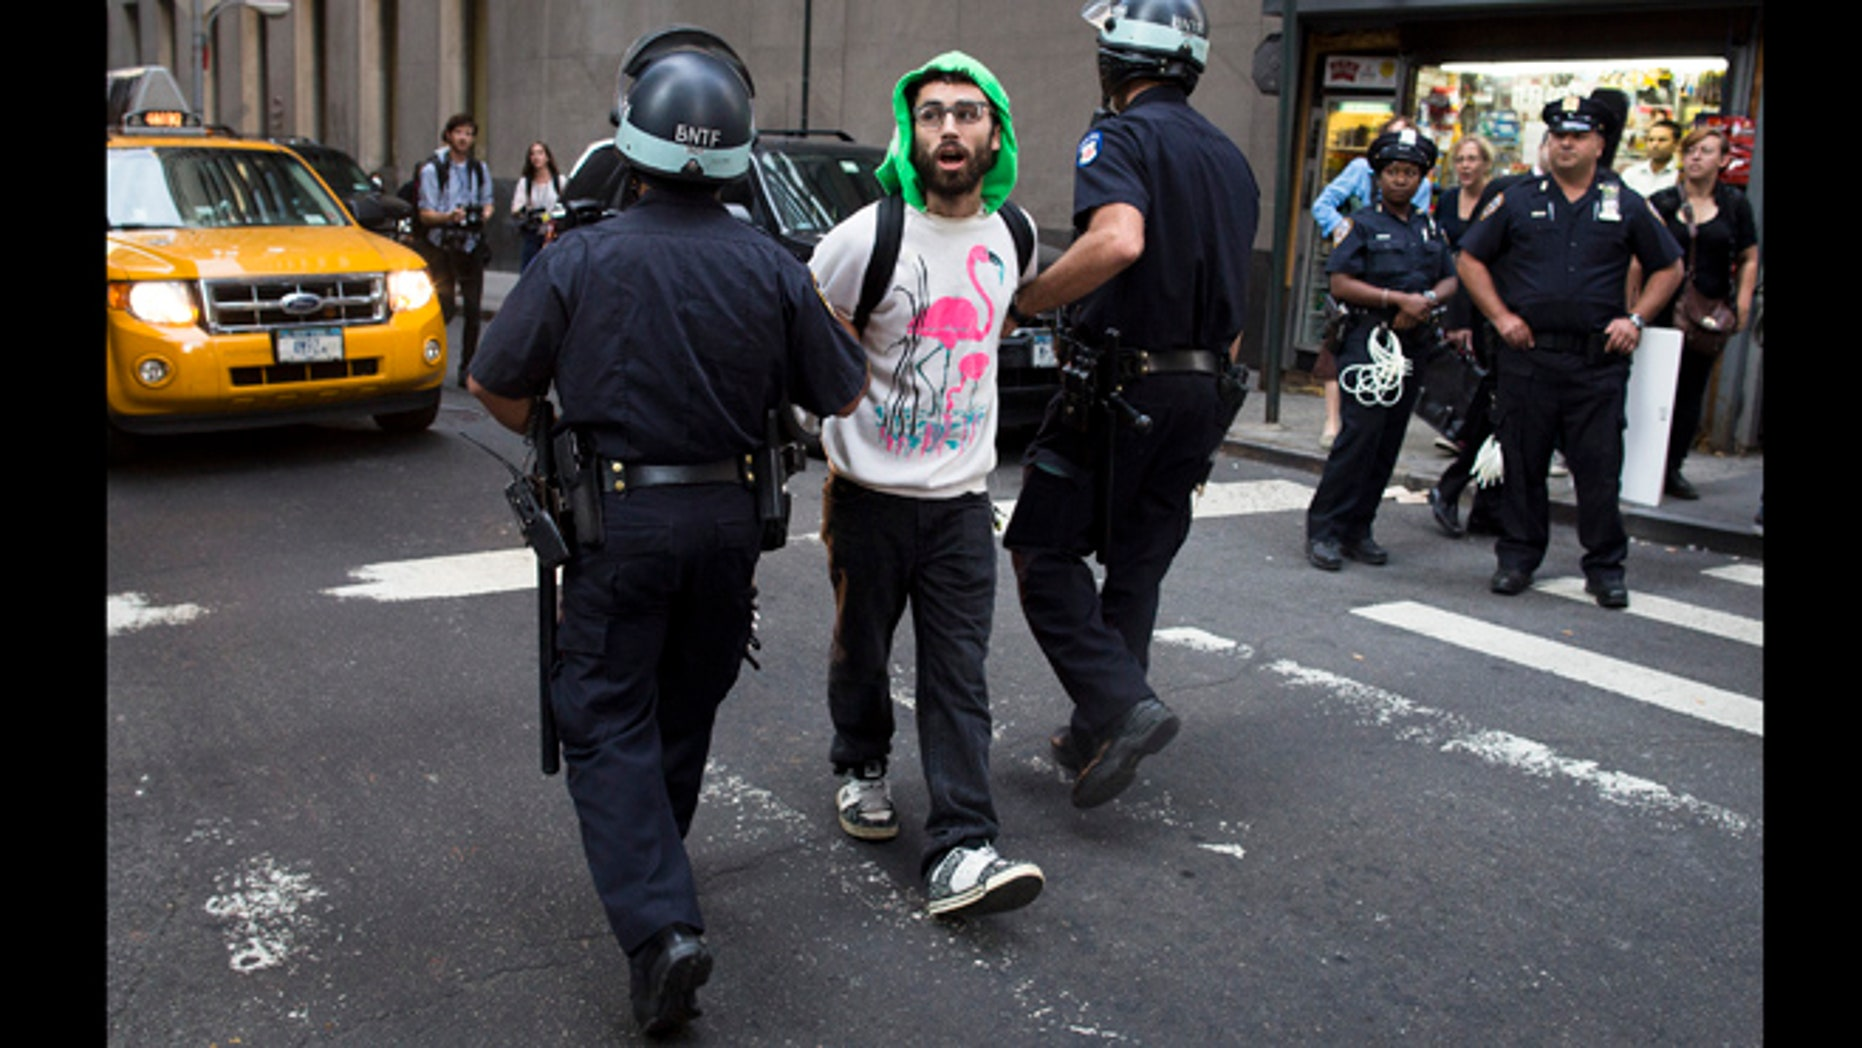 Sept. 17, 2012: An Occupy Wall Street protestor is arrested on Wall Street for blocking pedestrian traffic on a sidewalk in New York. A handful of Occupy Wall Street protestors have been arrested during a march toward the New York Stock Exchange on the anniversary of the grass-roots movement.